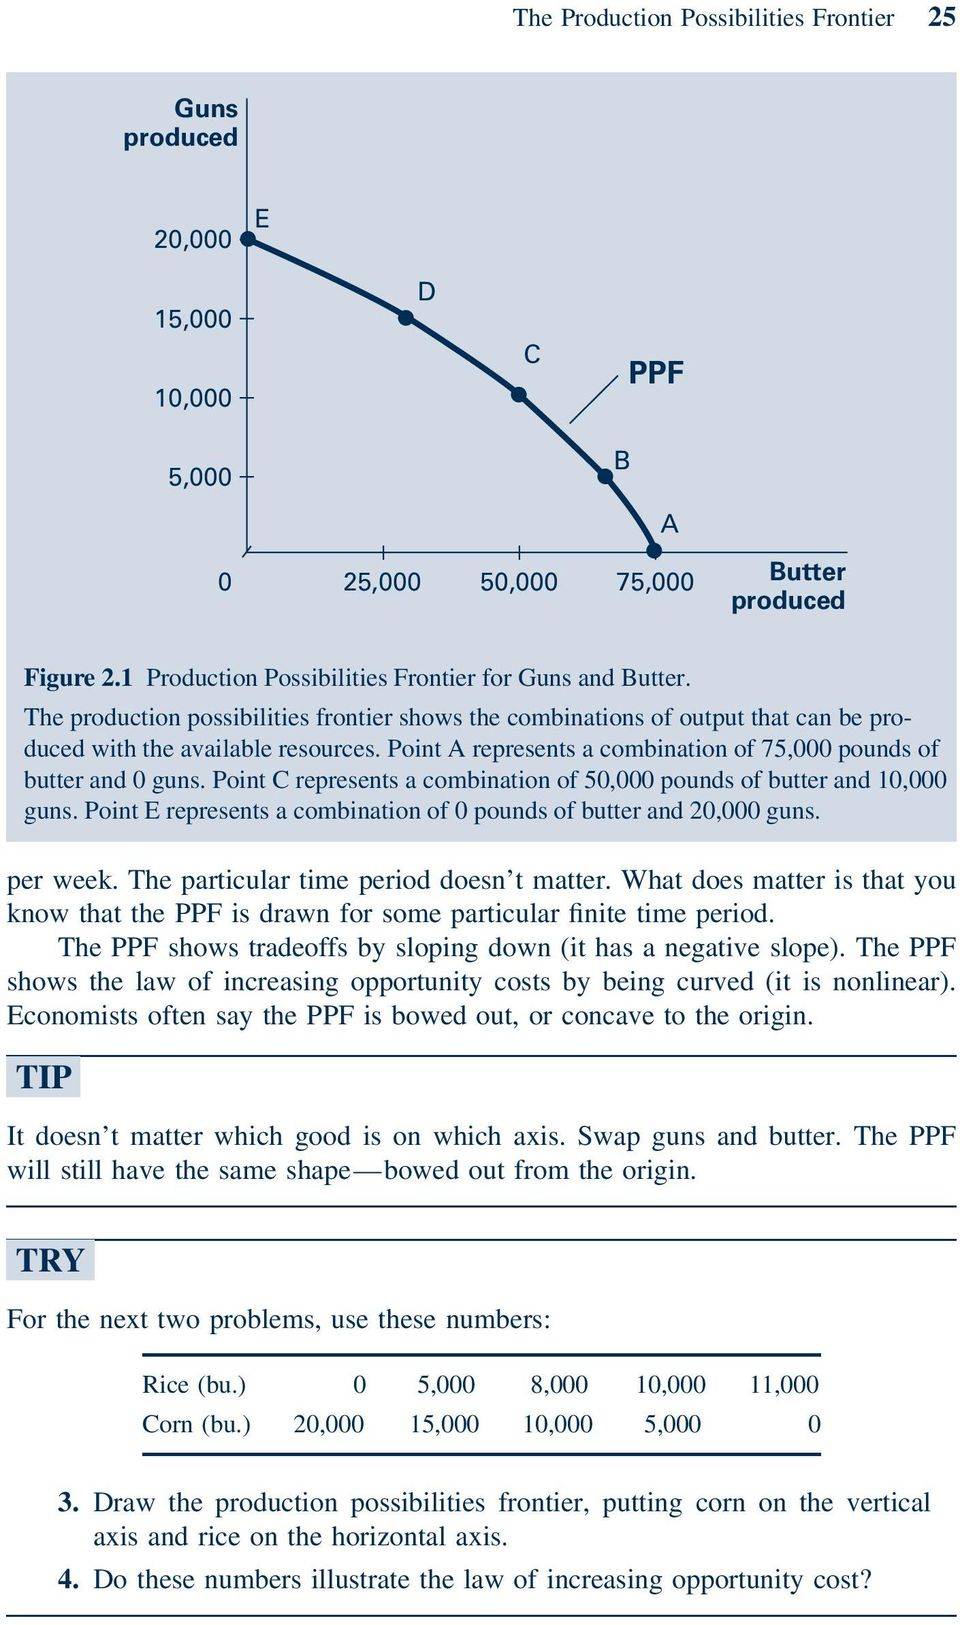 Worksheets Production Possibilities Curve Worksheet production possibilities frontier economic growth and gains from point c represents a combination of 50000 pounds butter 10000 guns e 6 26 chapter 2 fr